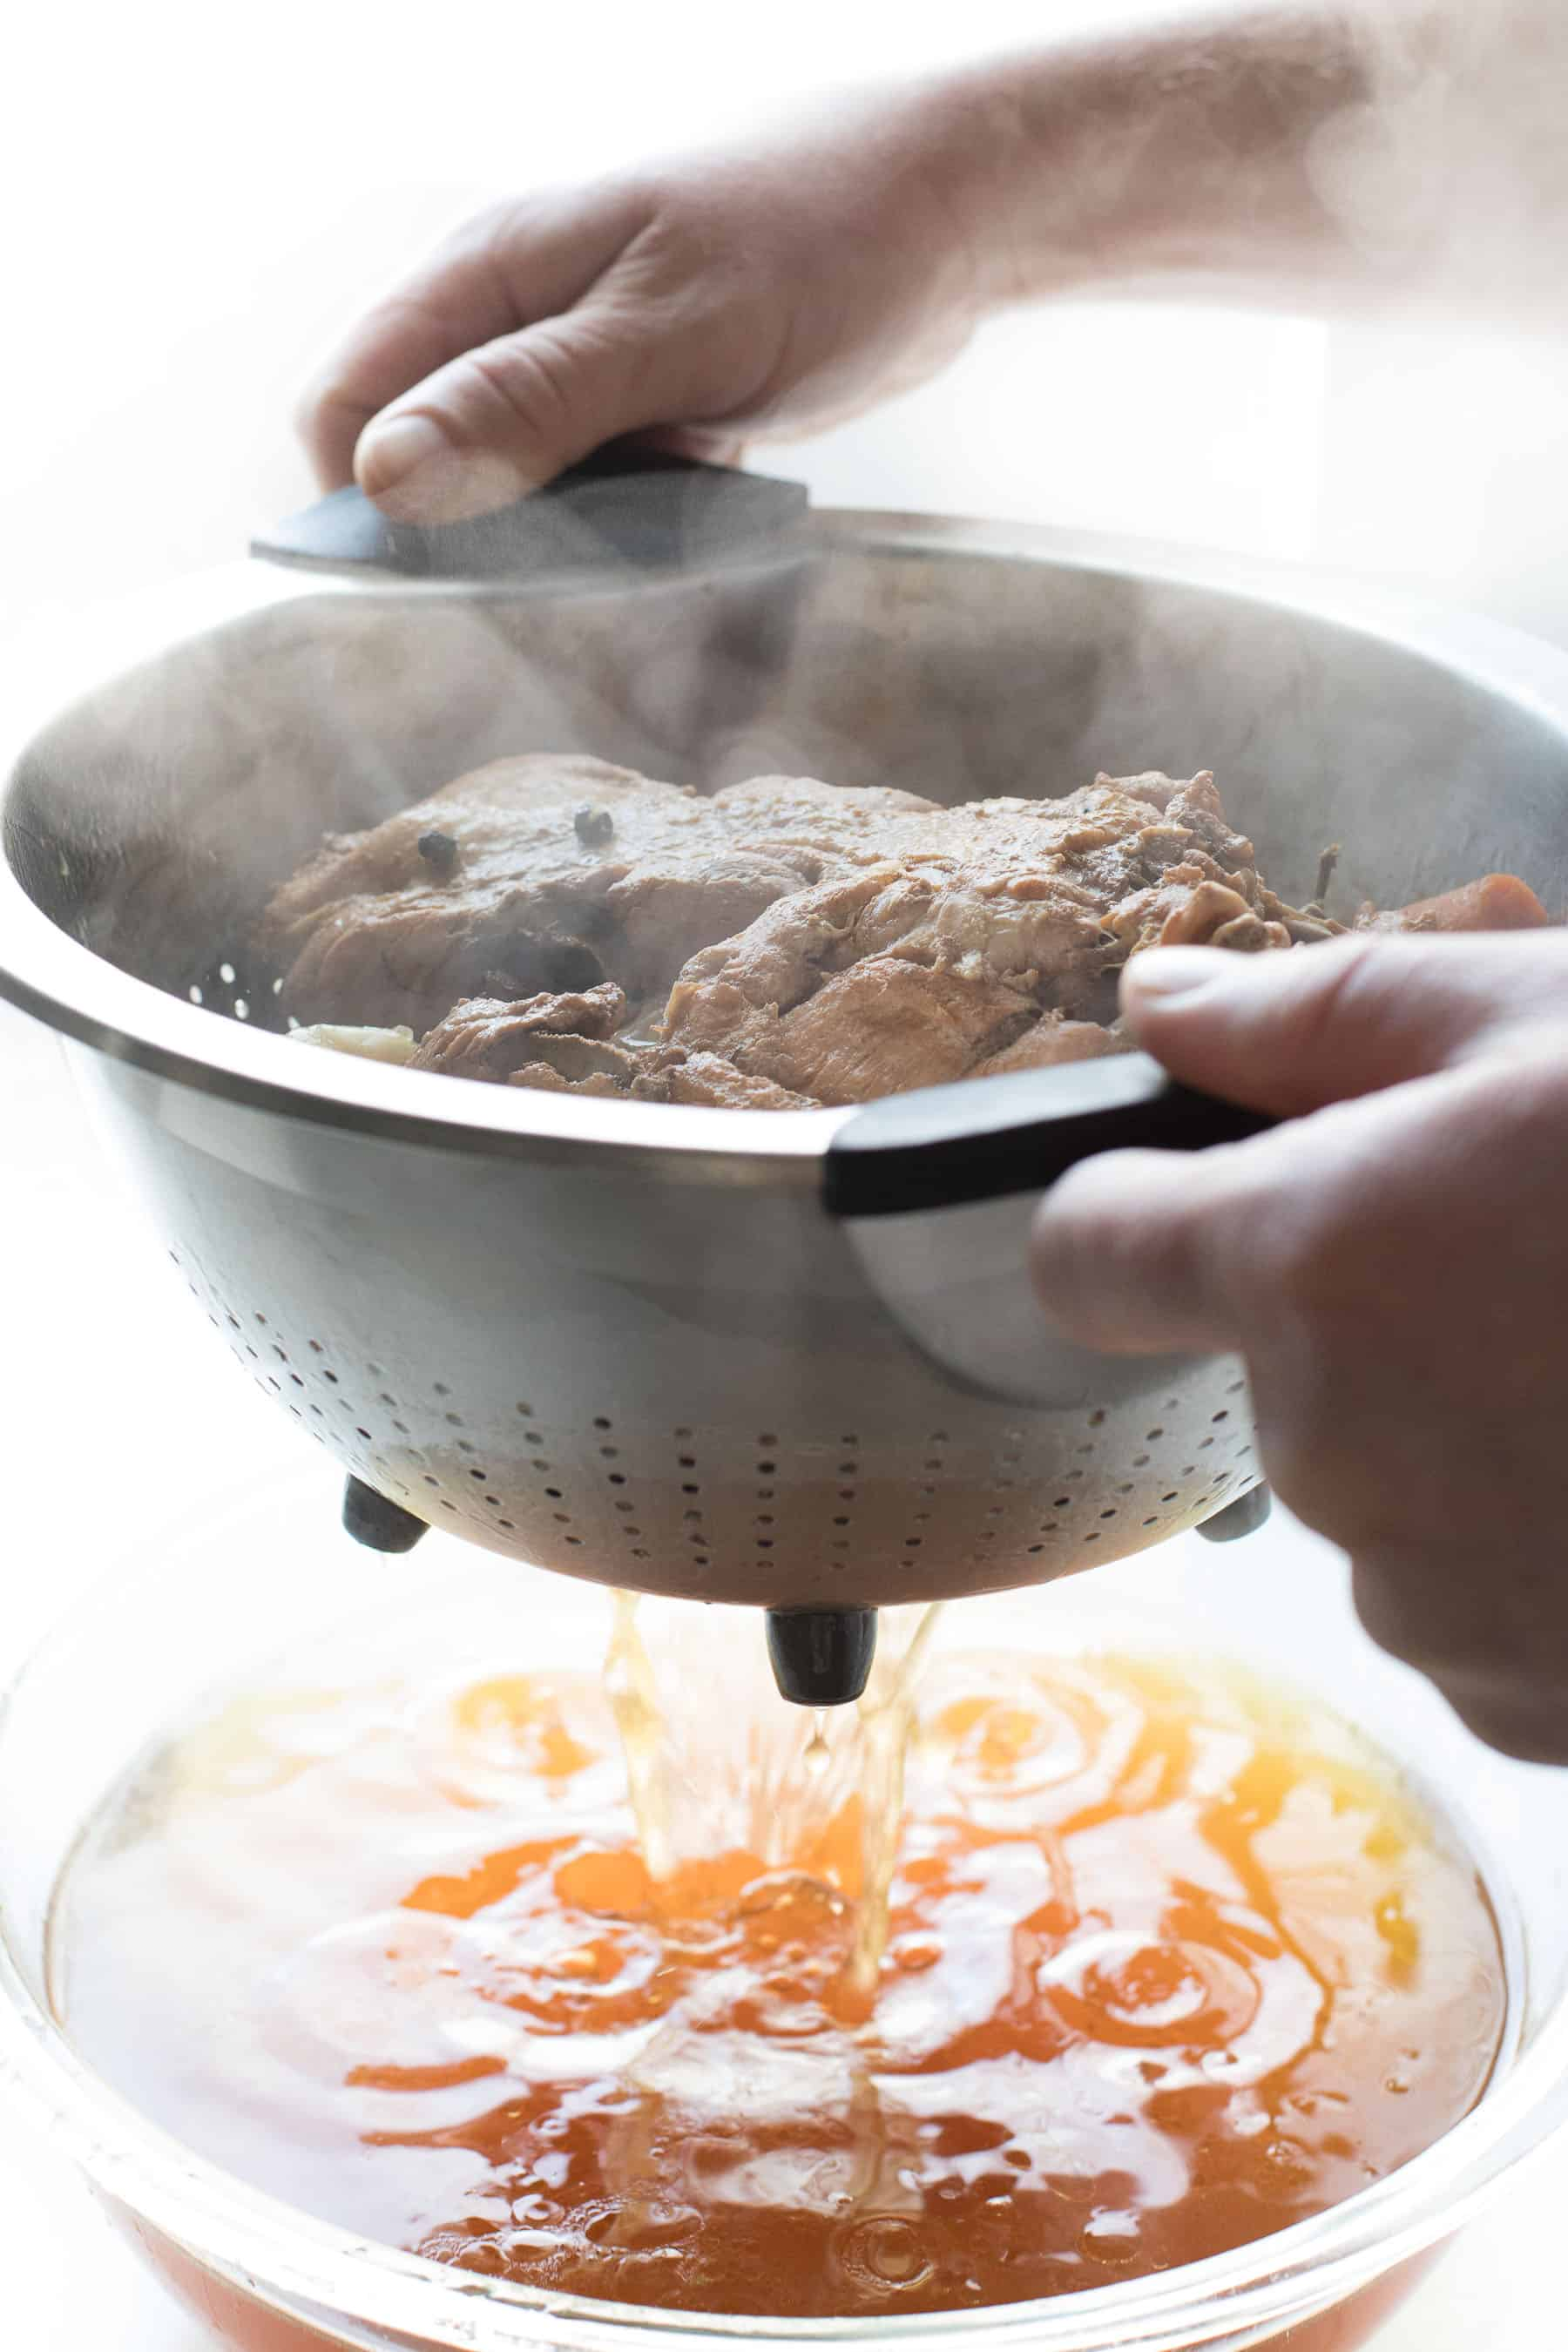 straining bone broth through a collander